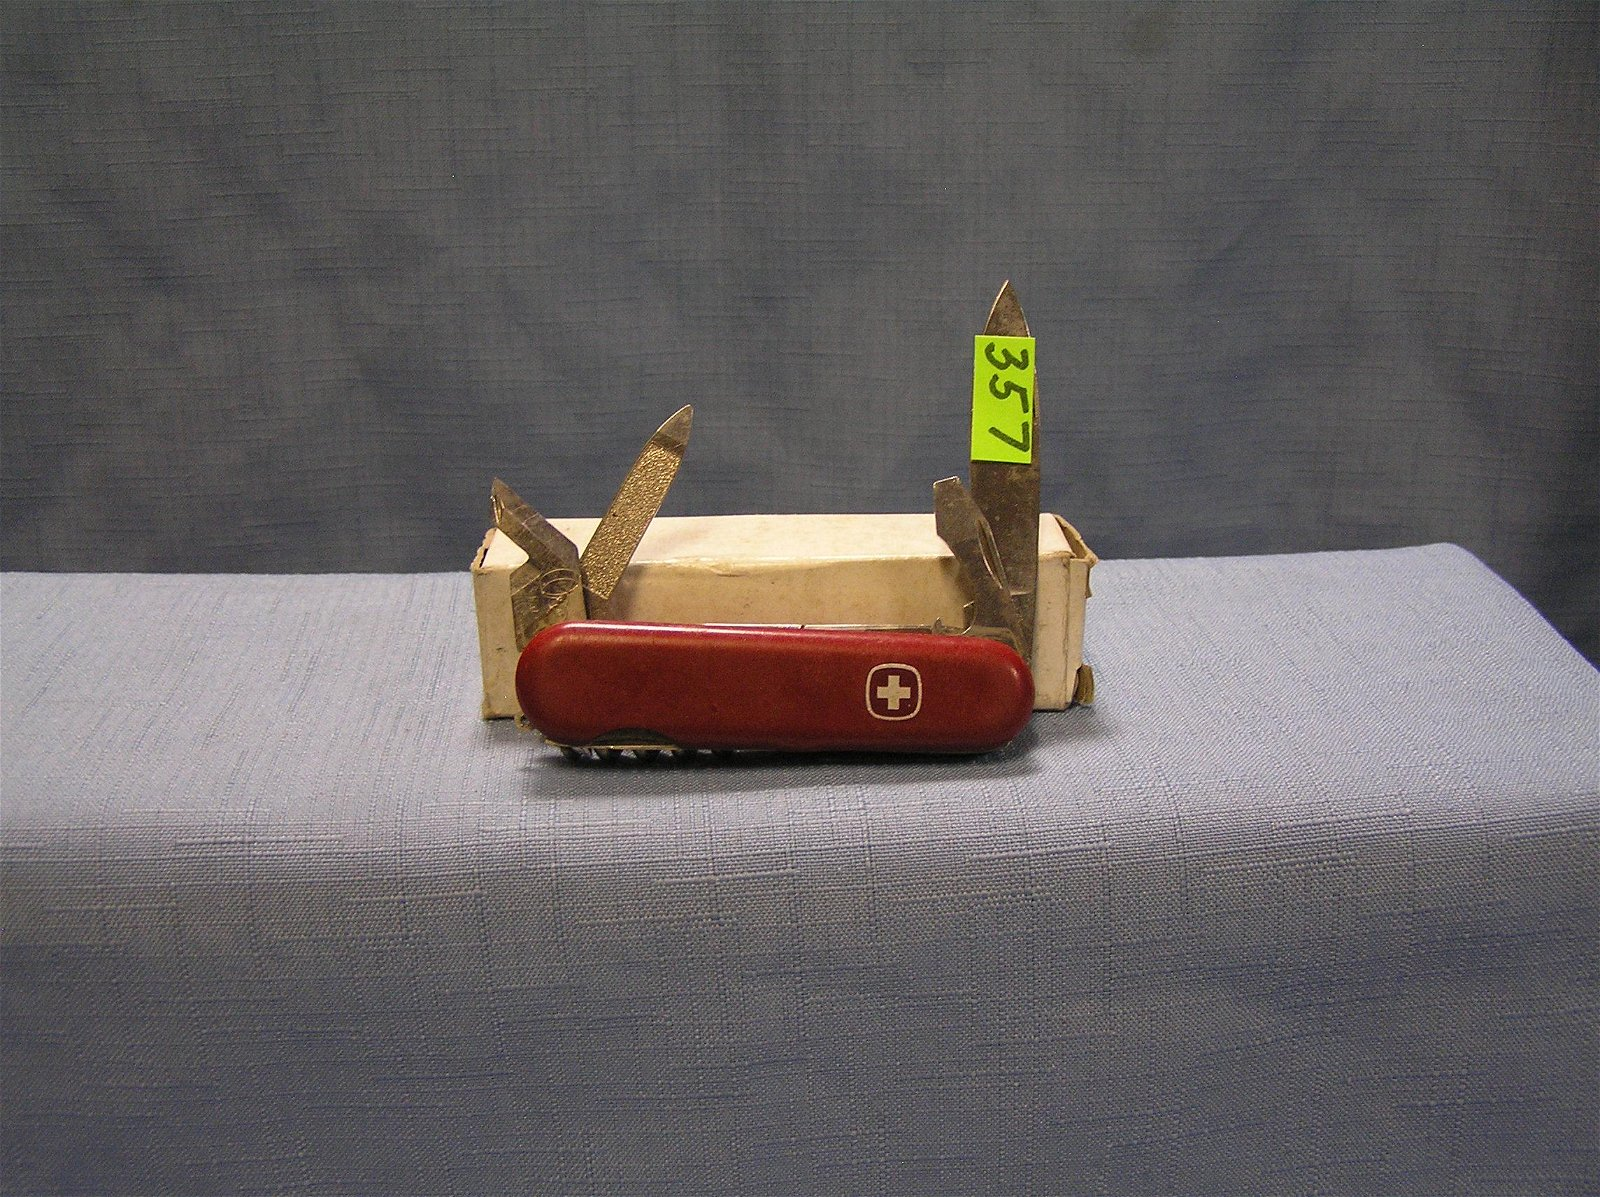 Vintage Swiss Army knife made in Switzerland